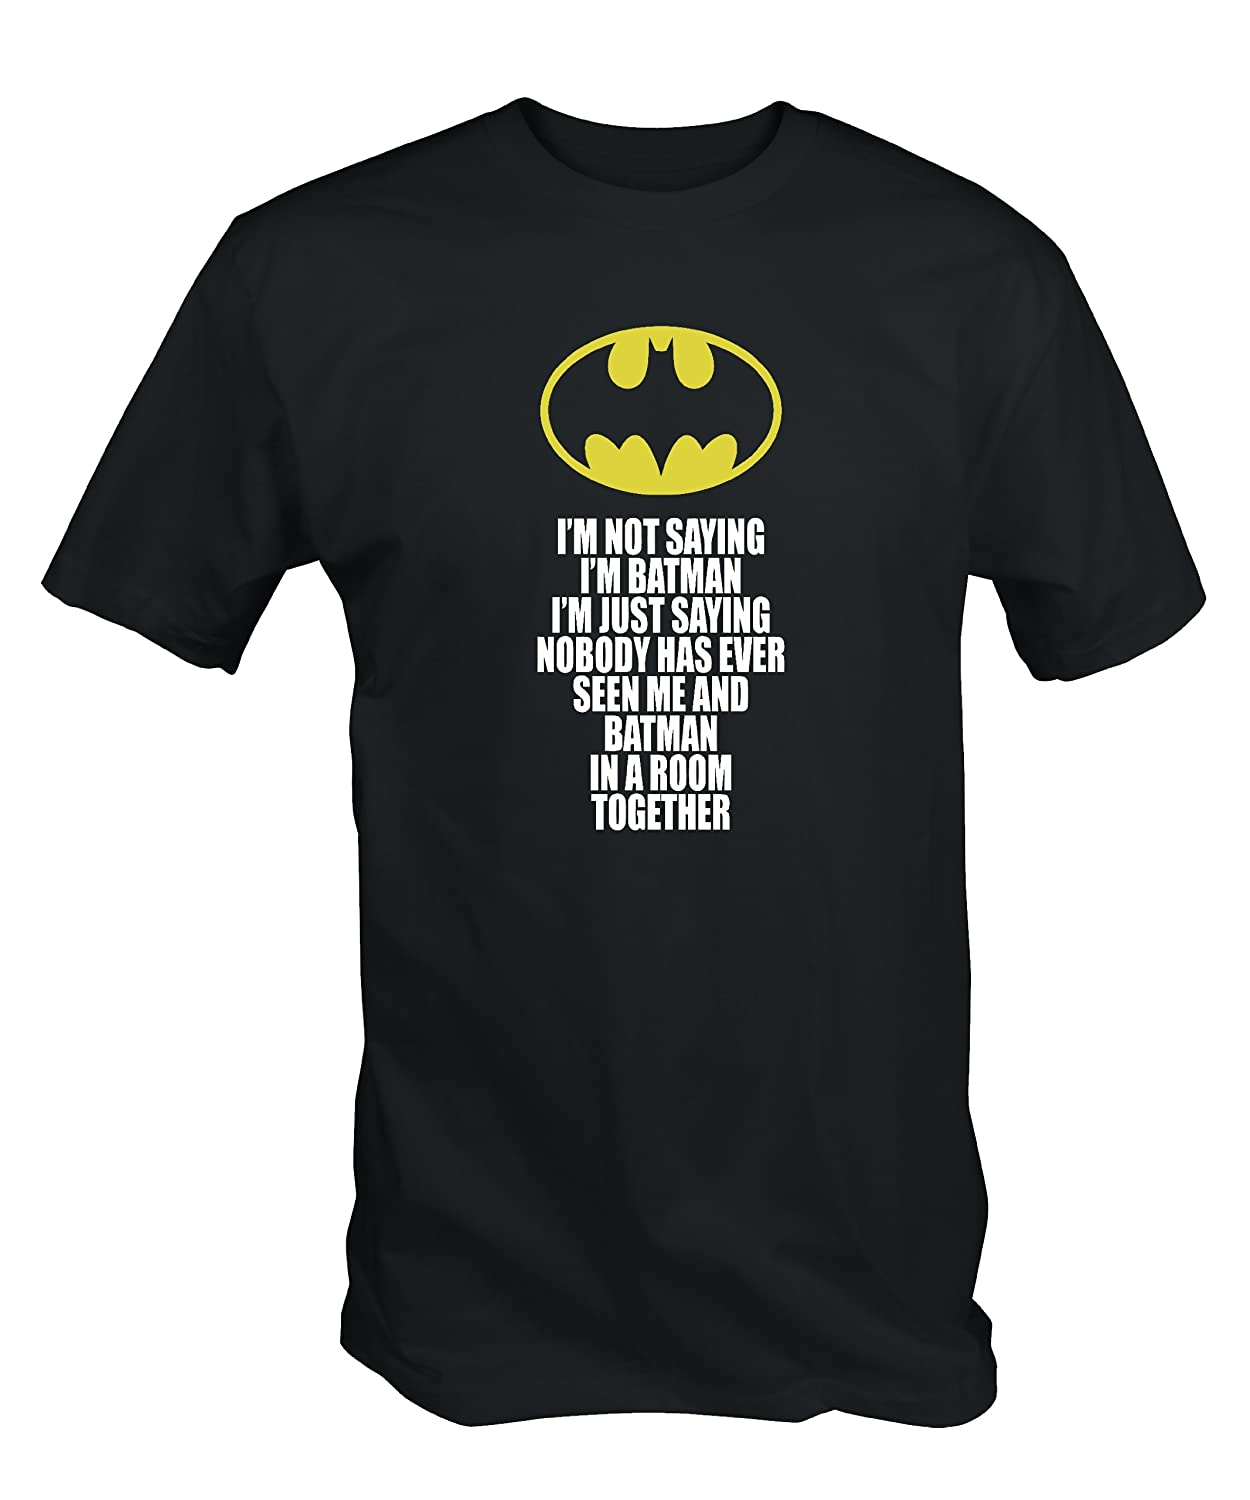 Black t shirt batman - Funny I M Not Saying I M Batman T Shirt Black S Xxl Amazon Co Uk Clothing